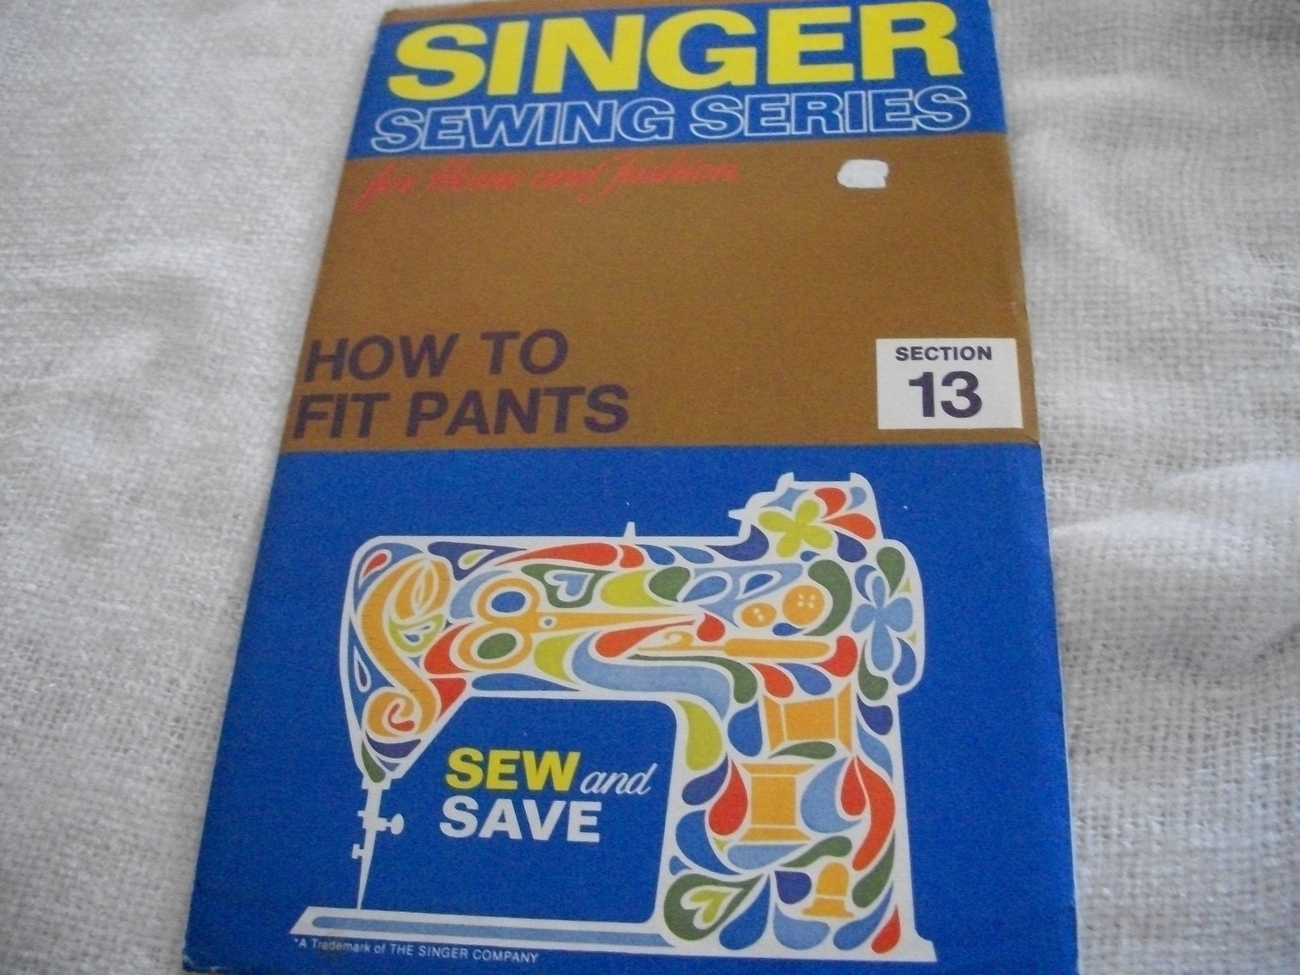 Singer Sewing Series~How To Fit Pants